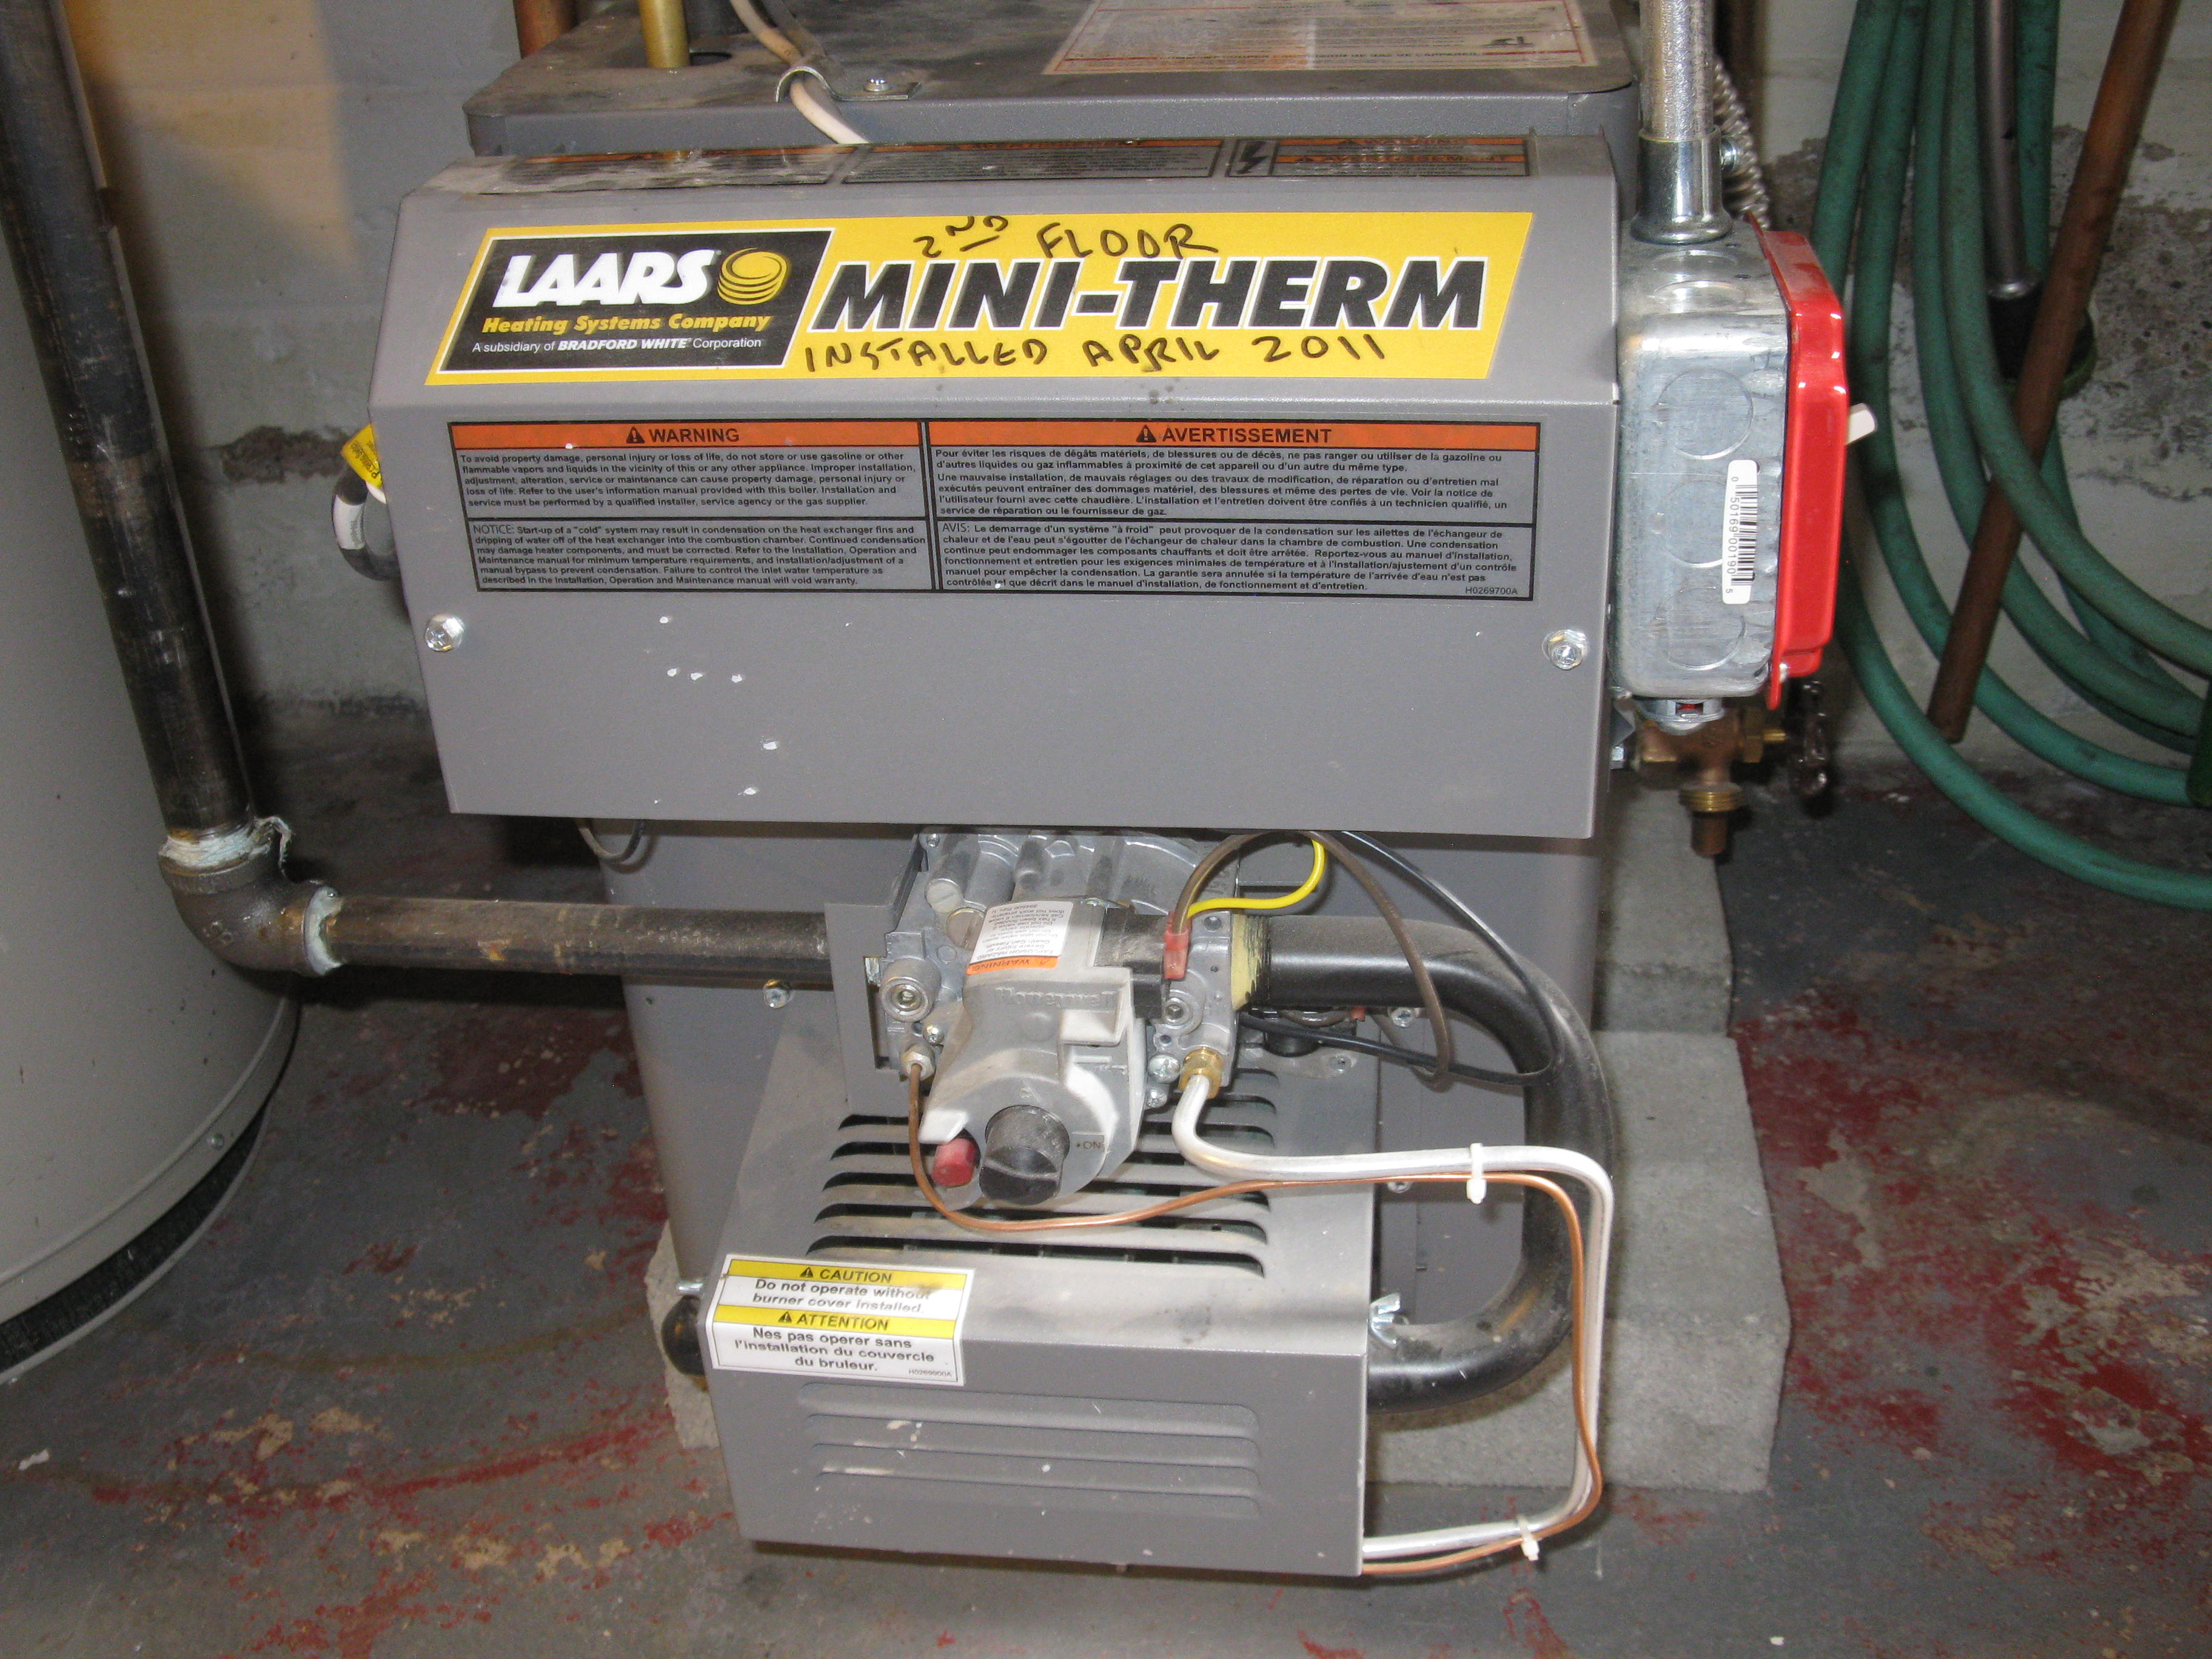 Laars Gas Furnace Electrical Wiring Diagram Automotive Images Gallery